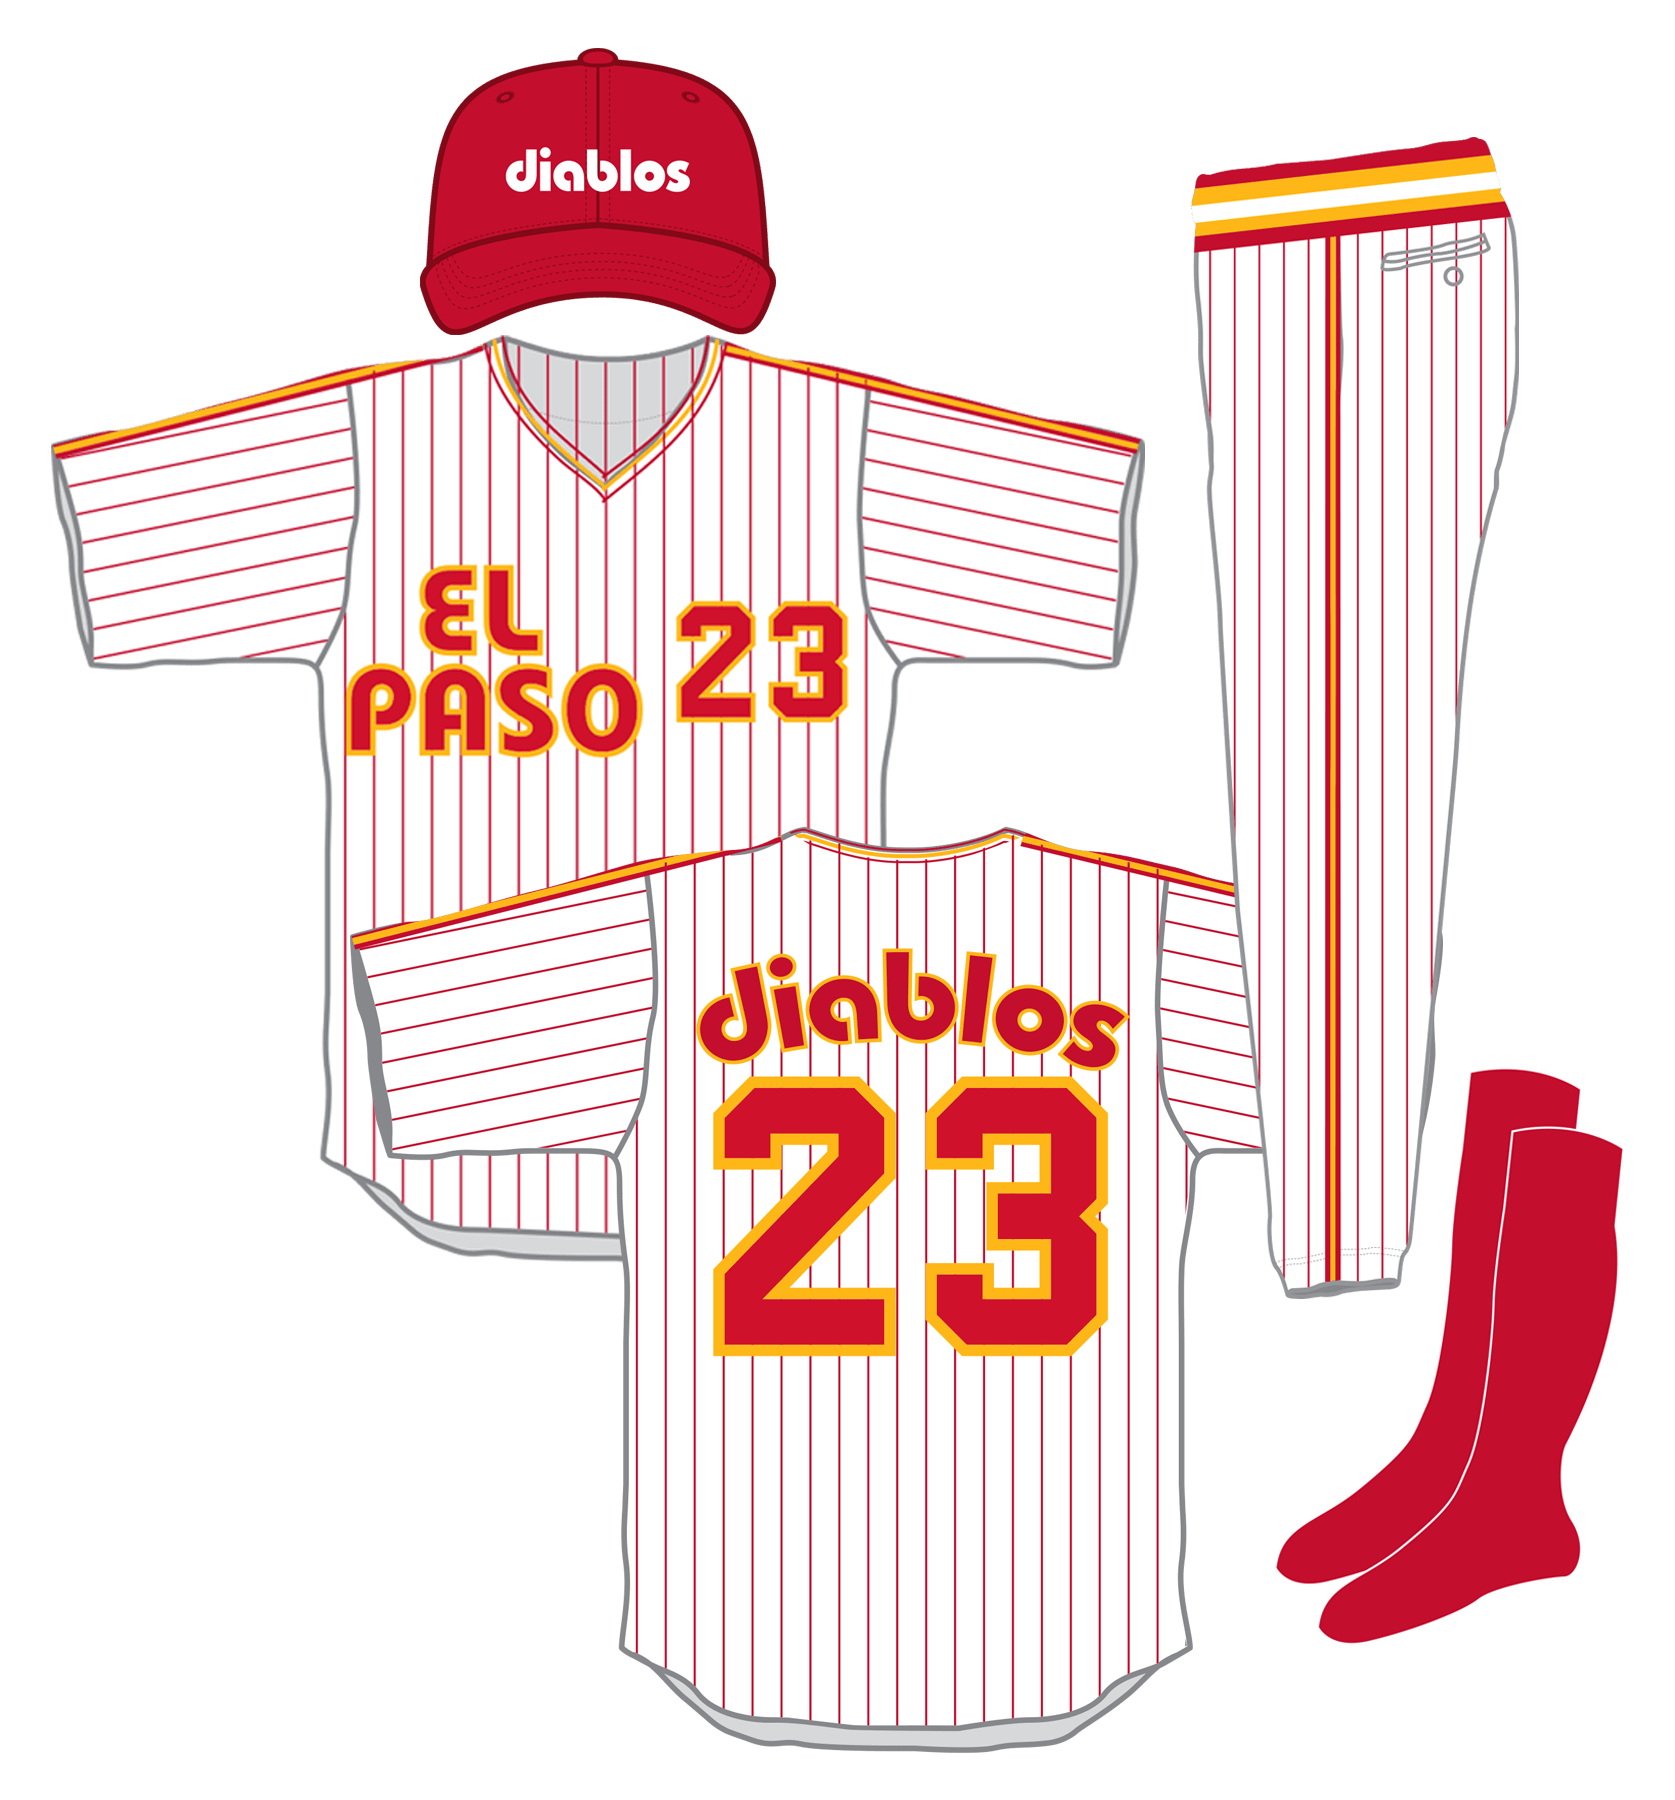 Miami marlins baseball jersey clipart black and white library Wednesday, El Paso Diablos day – The Dutch Baseball Hangout black and white library